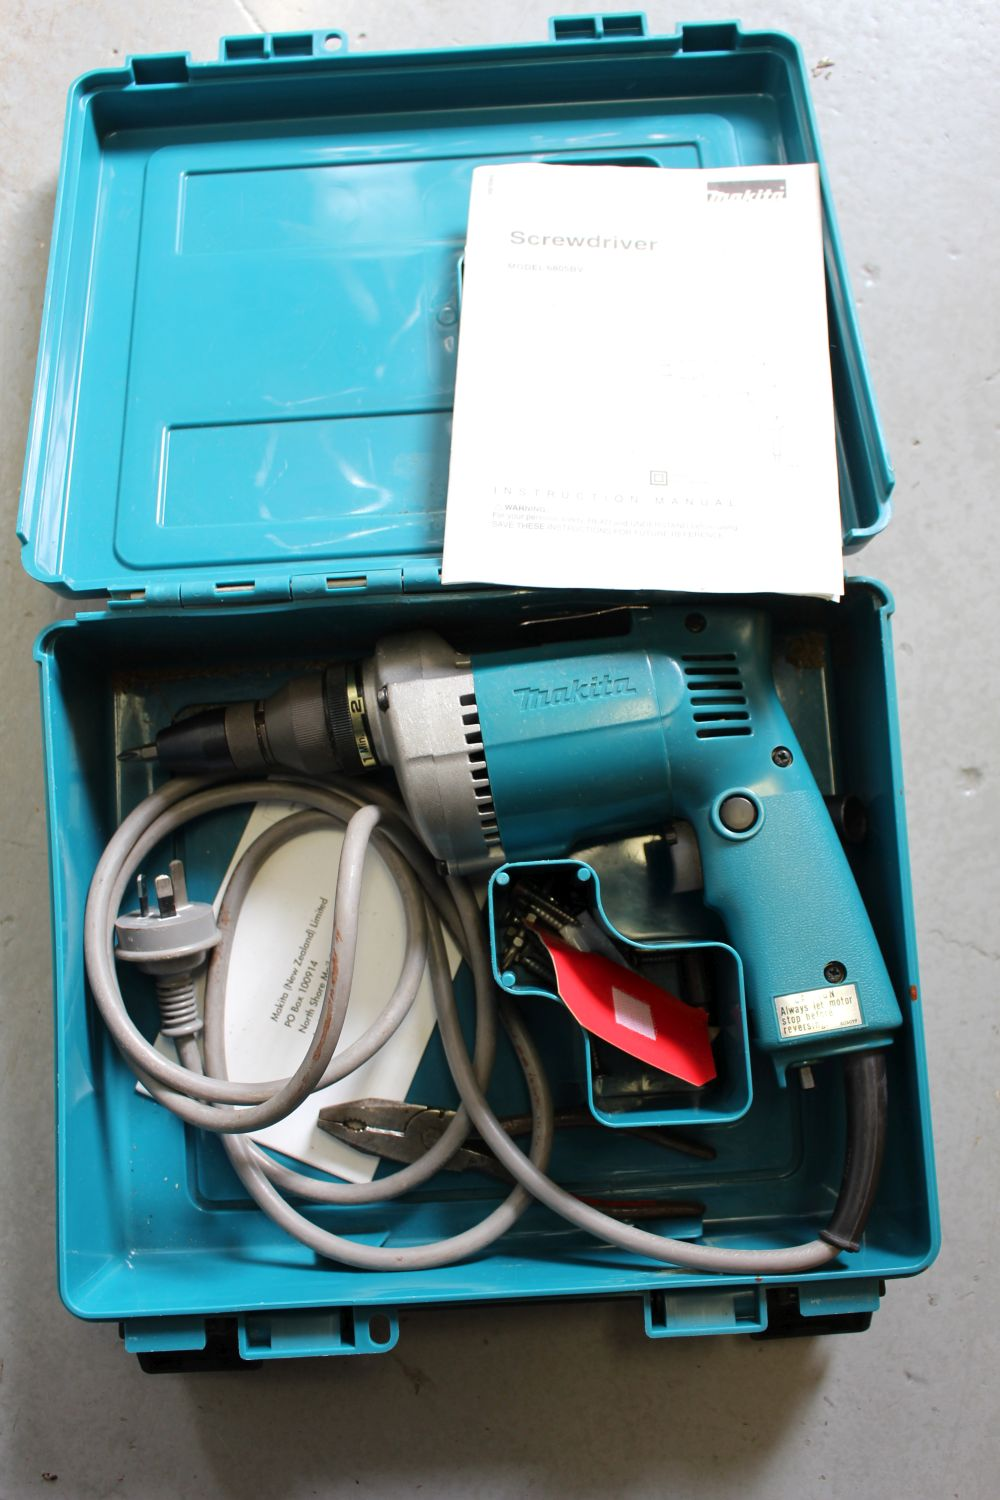 A Makita electric screwdriver,